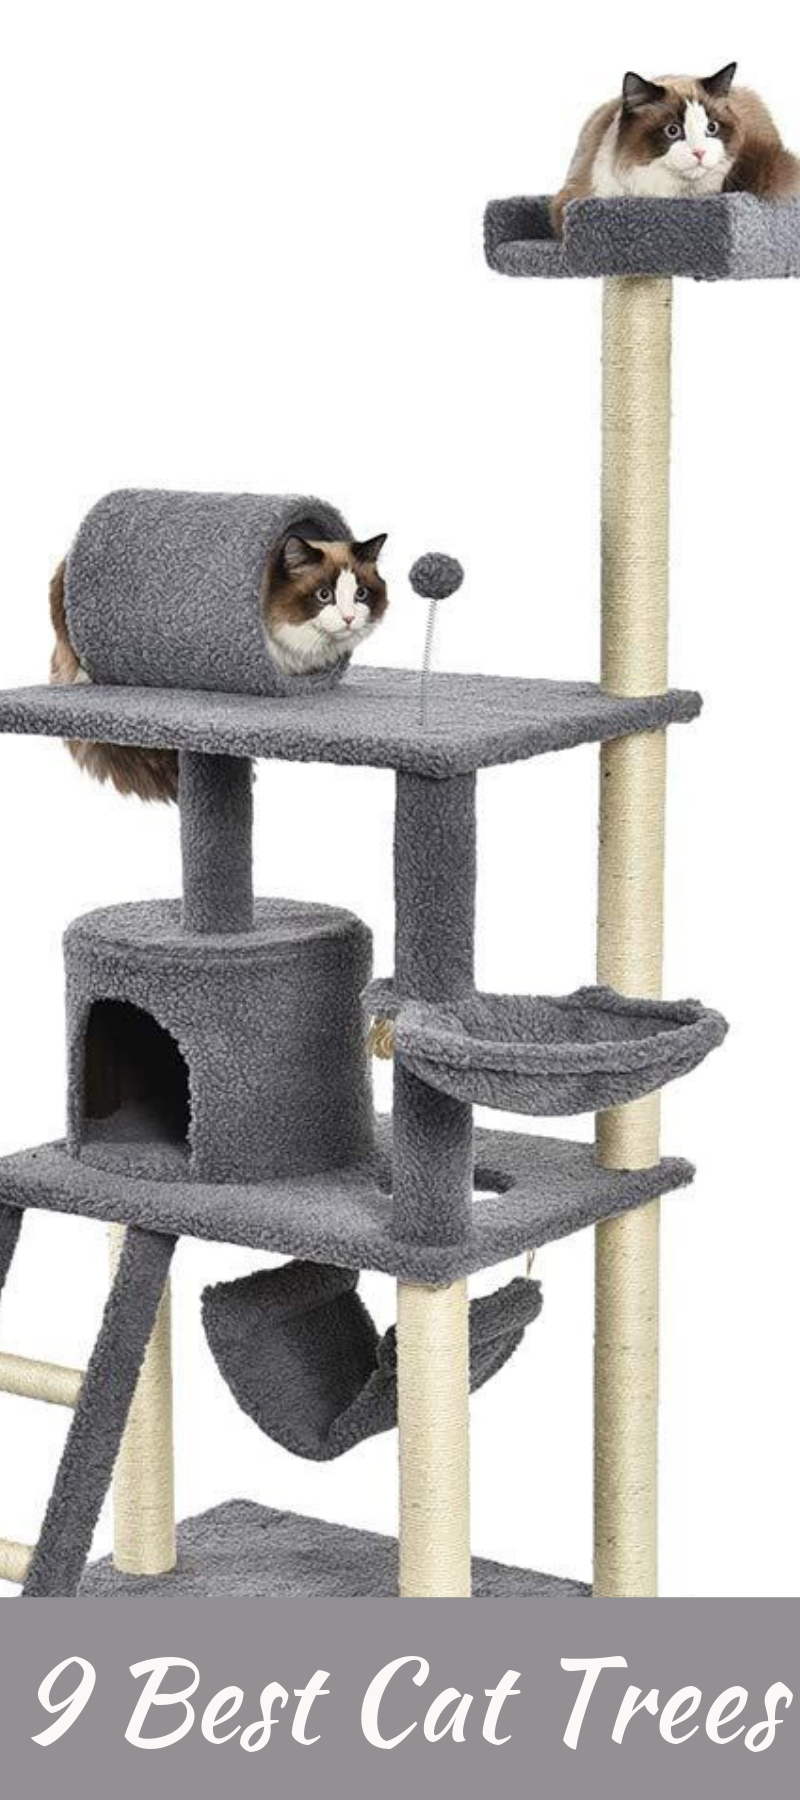 9 Best Cat Trees On Amazon 2019 Cool Cat Trees Modern Cat Tree Cat Scratching Post